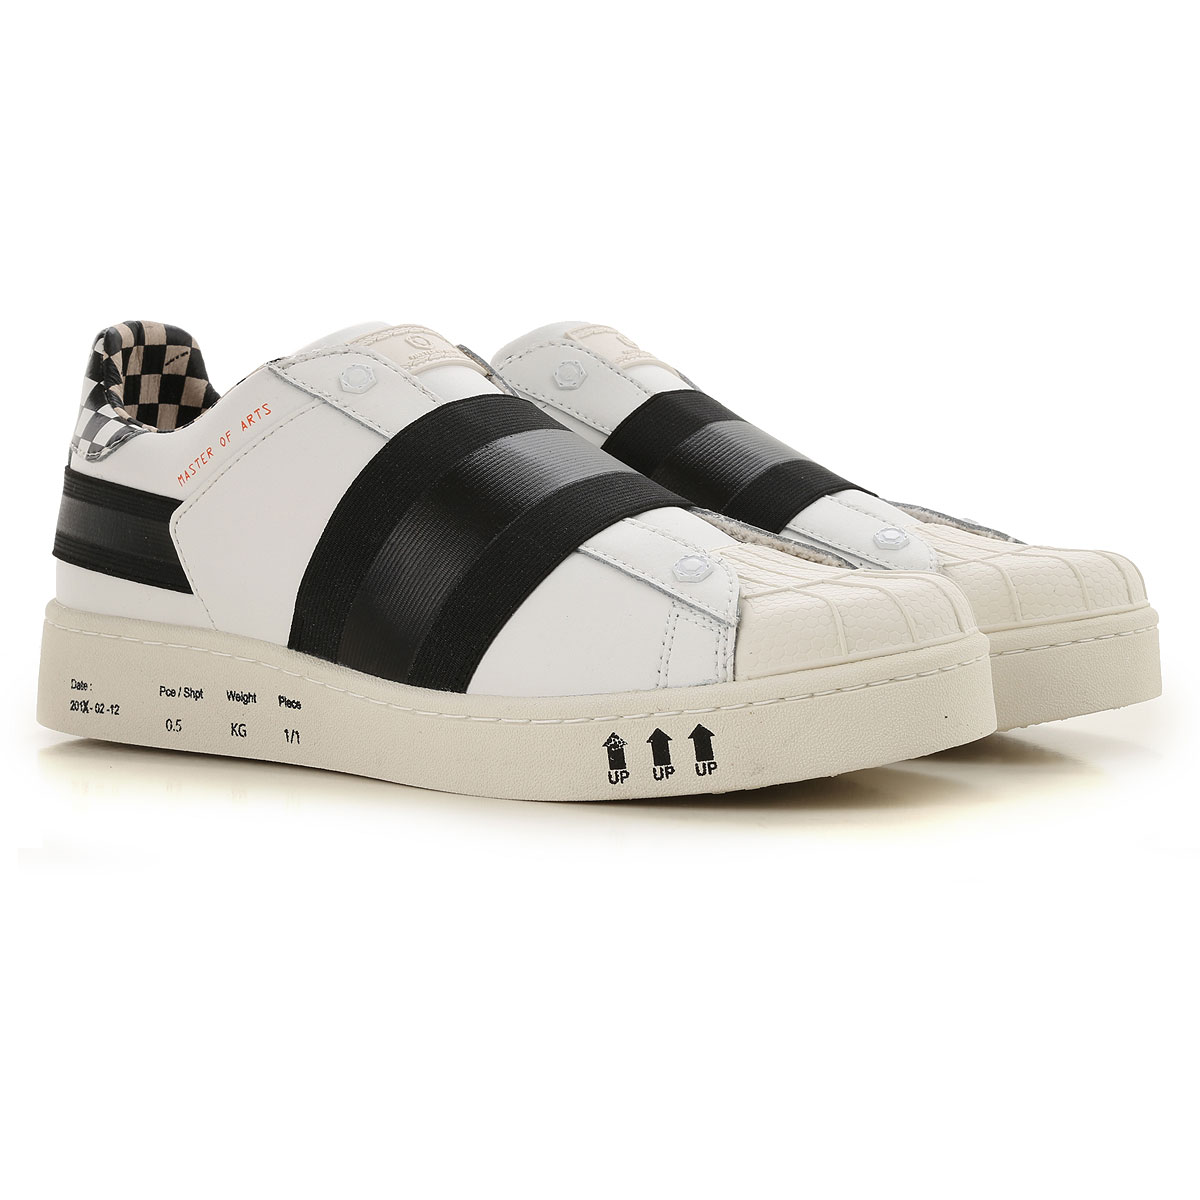 Image of Moa Master of Arts Slip on Sneakers for Men, White, Leather, 2017, 10.5 7.5 8 9